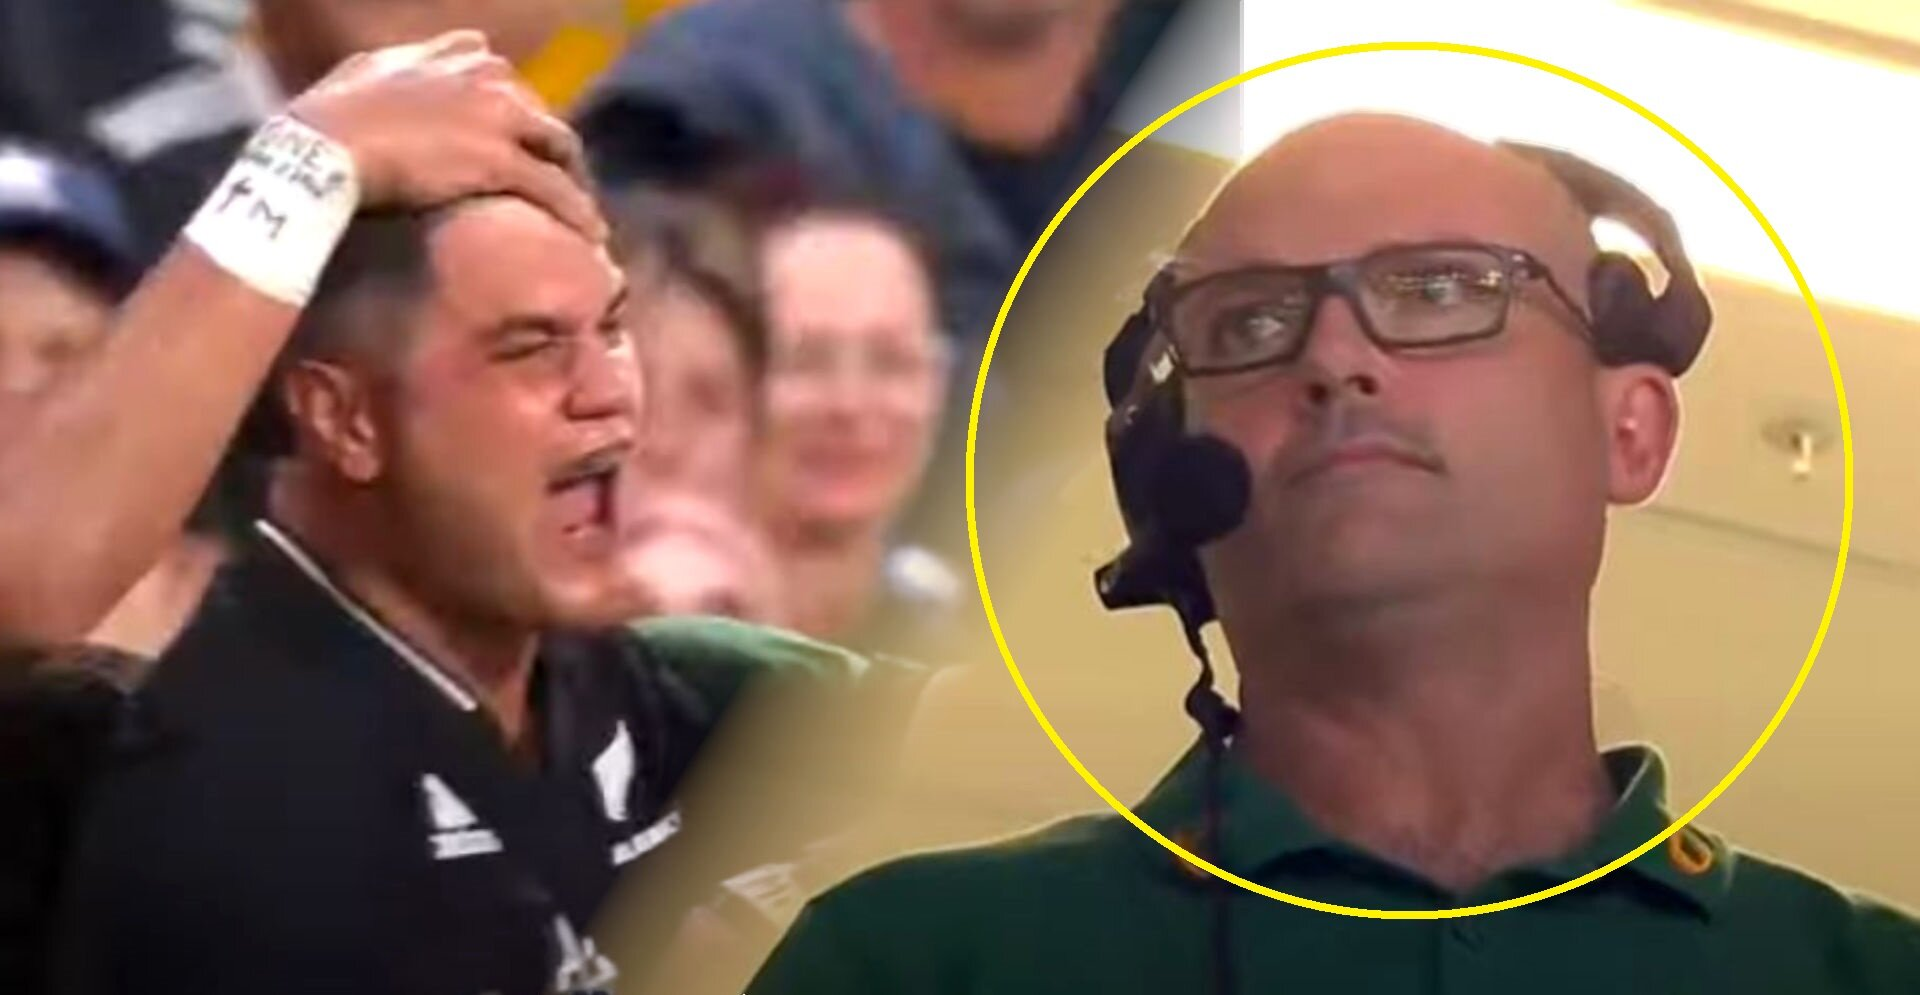 Video claims 'Dumbest 6 minutes in Springbok history' just happened